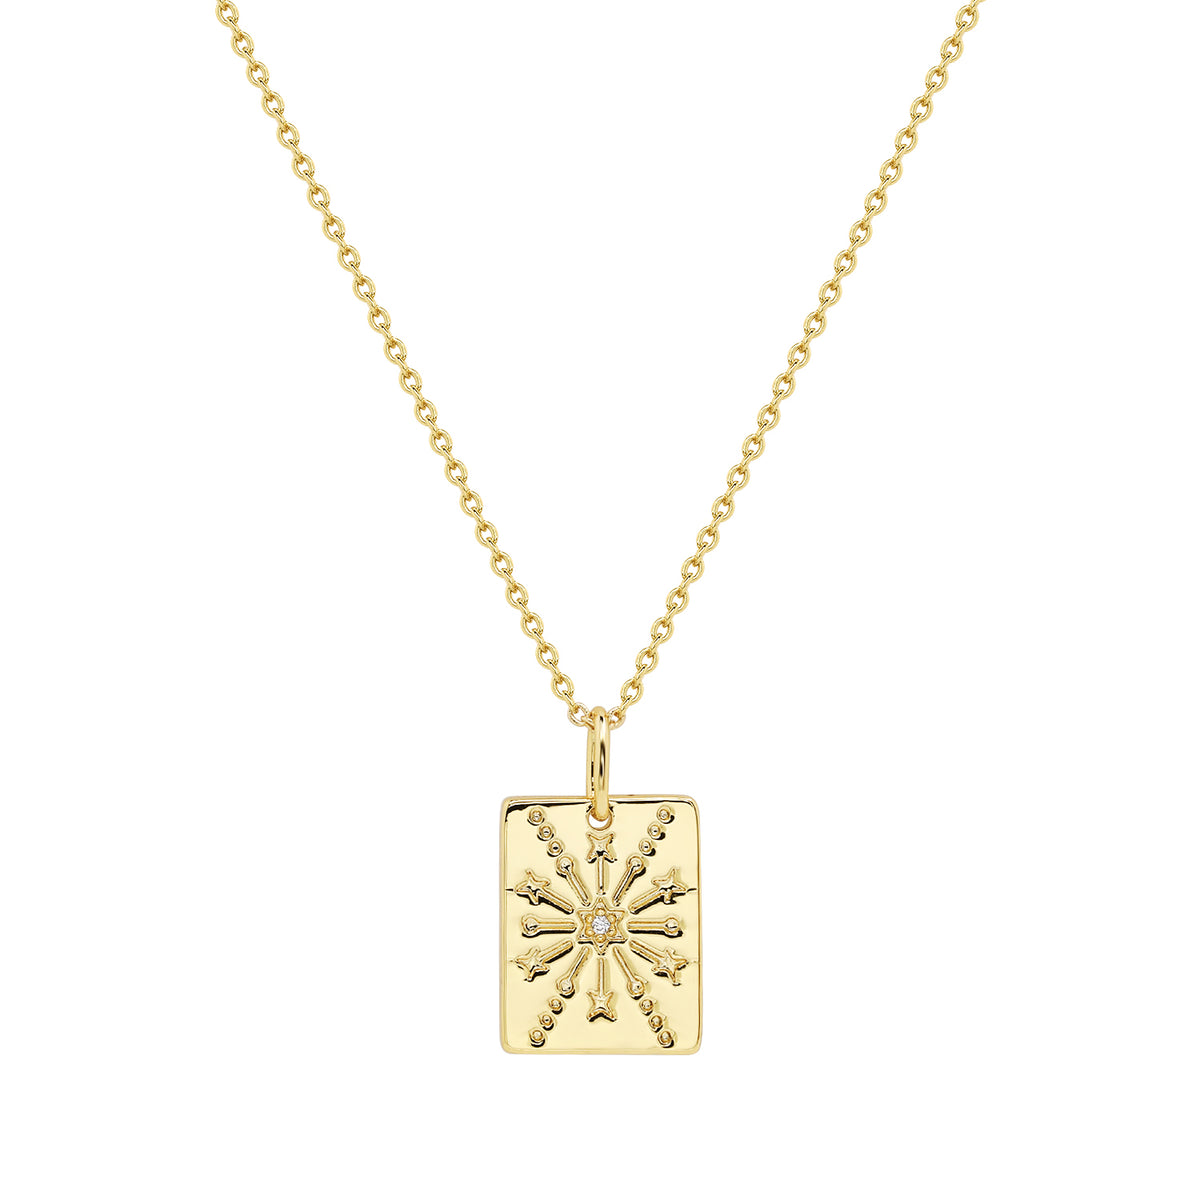 Wish Pendants | Protection & Health Pendant | White CZ | 14K Gold Plated 925 Silver